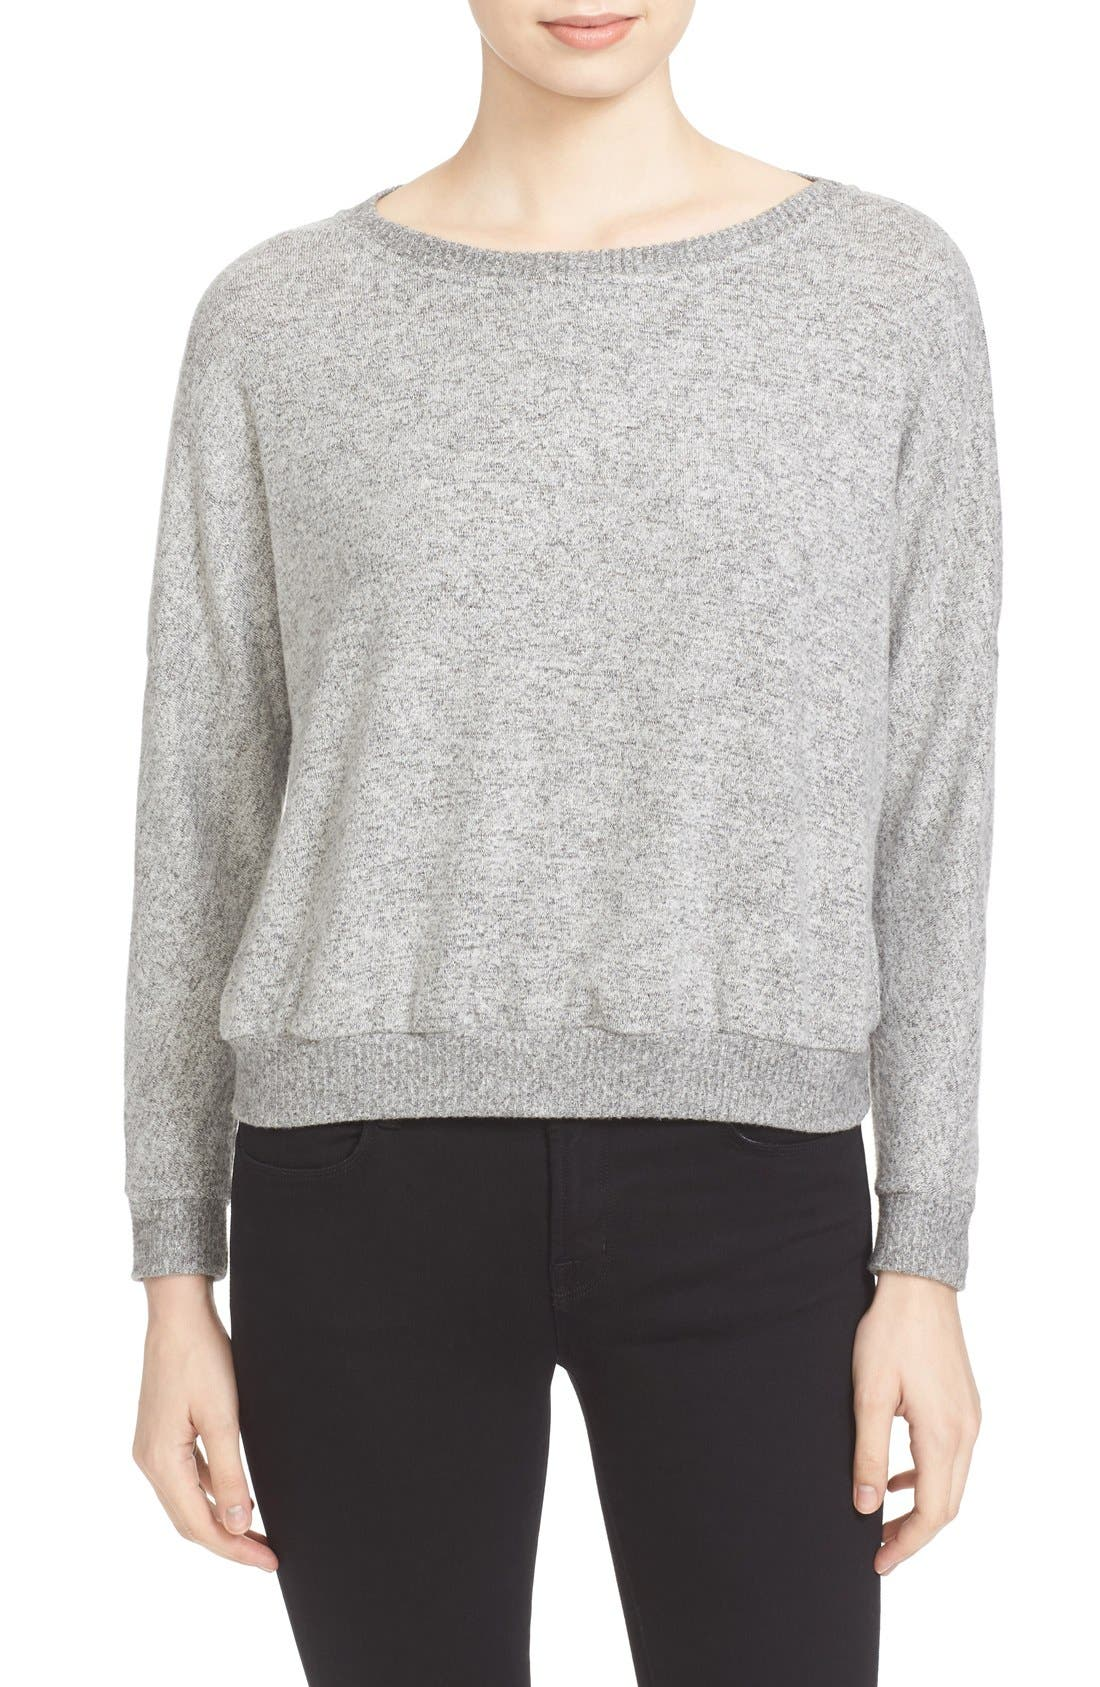 Soft Joie Giardia Drop Shoulder Sweater,                             Main thumbnail 1, color,                             Heather Grey